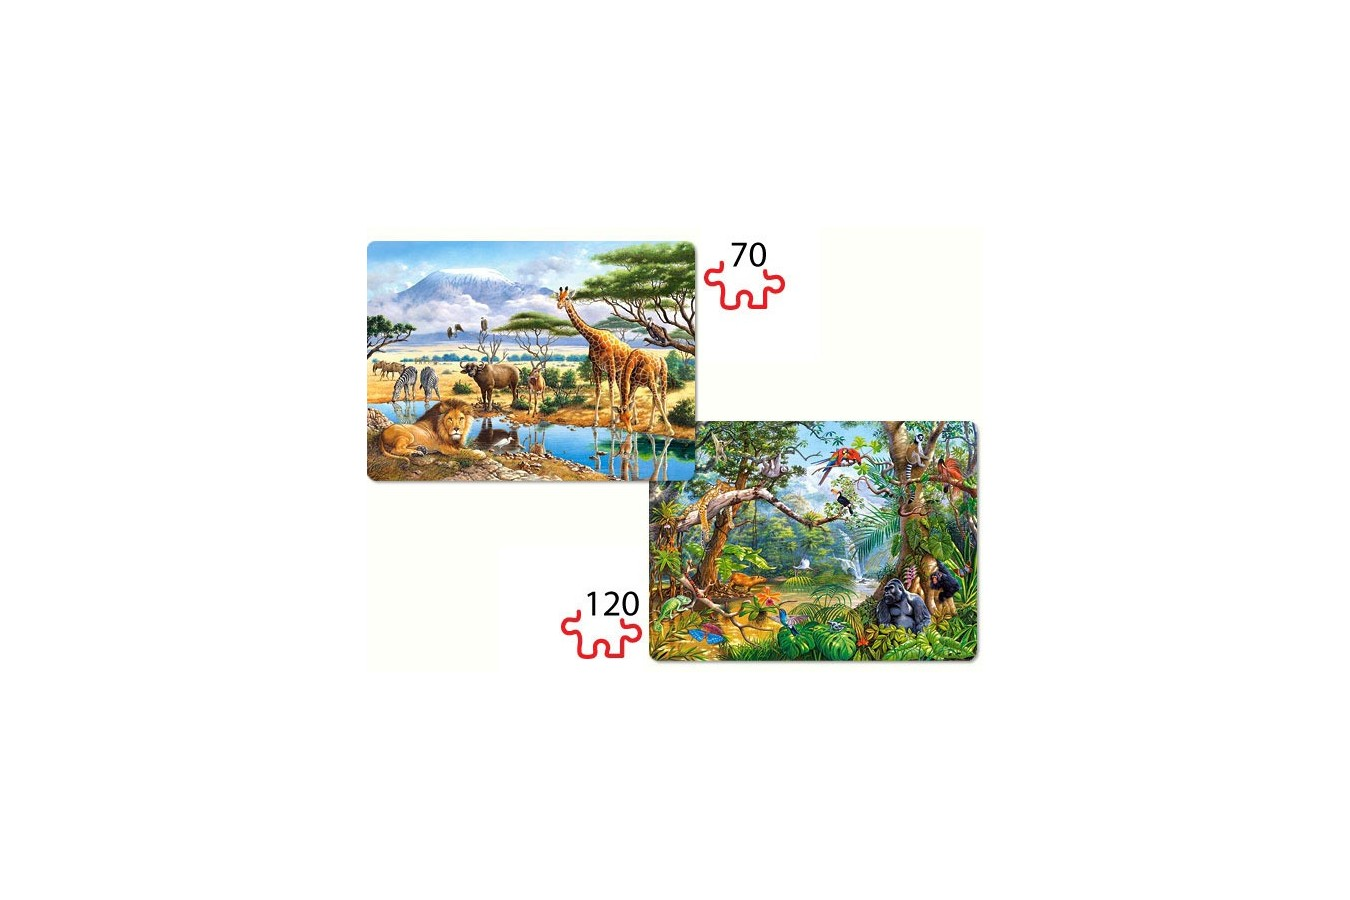 Puzzle Castorland 2 in 1 - Savanna and Jungle, 70/120 piese